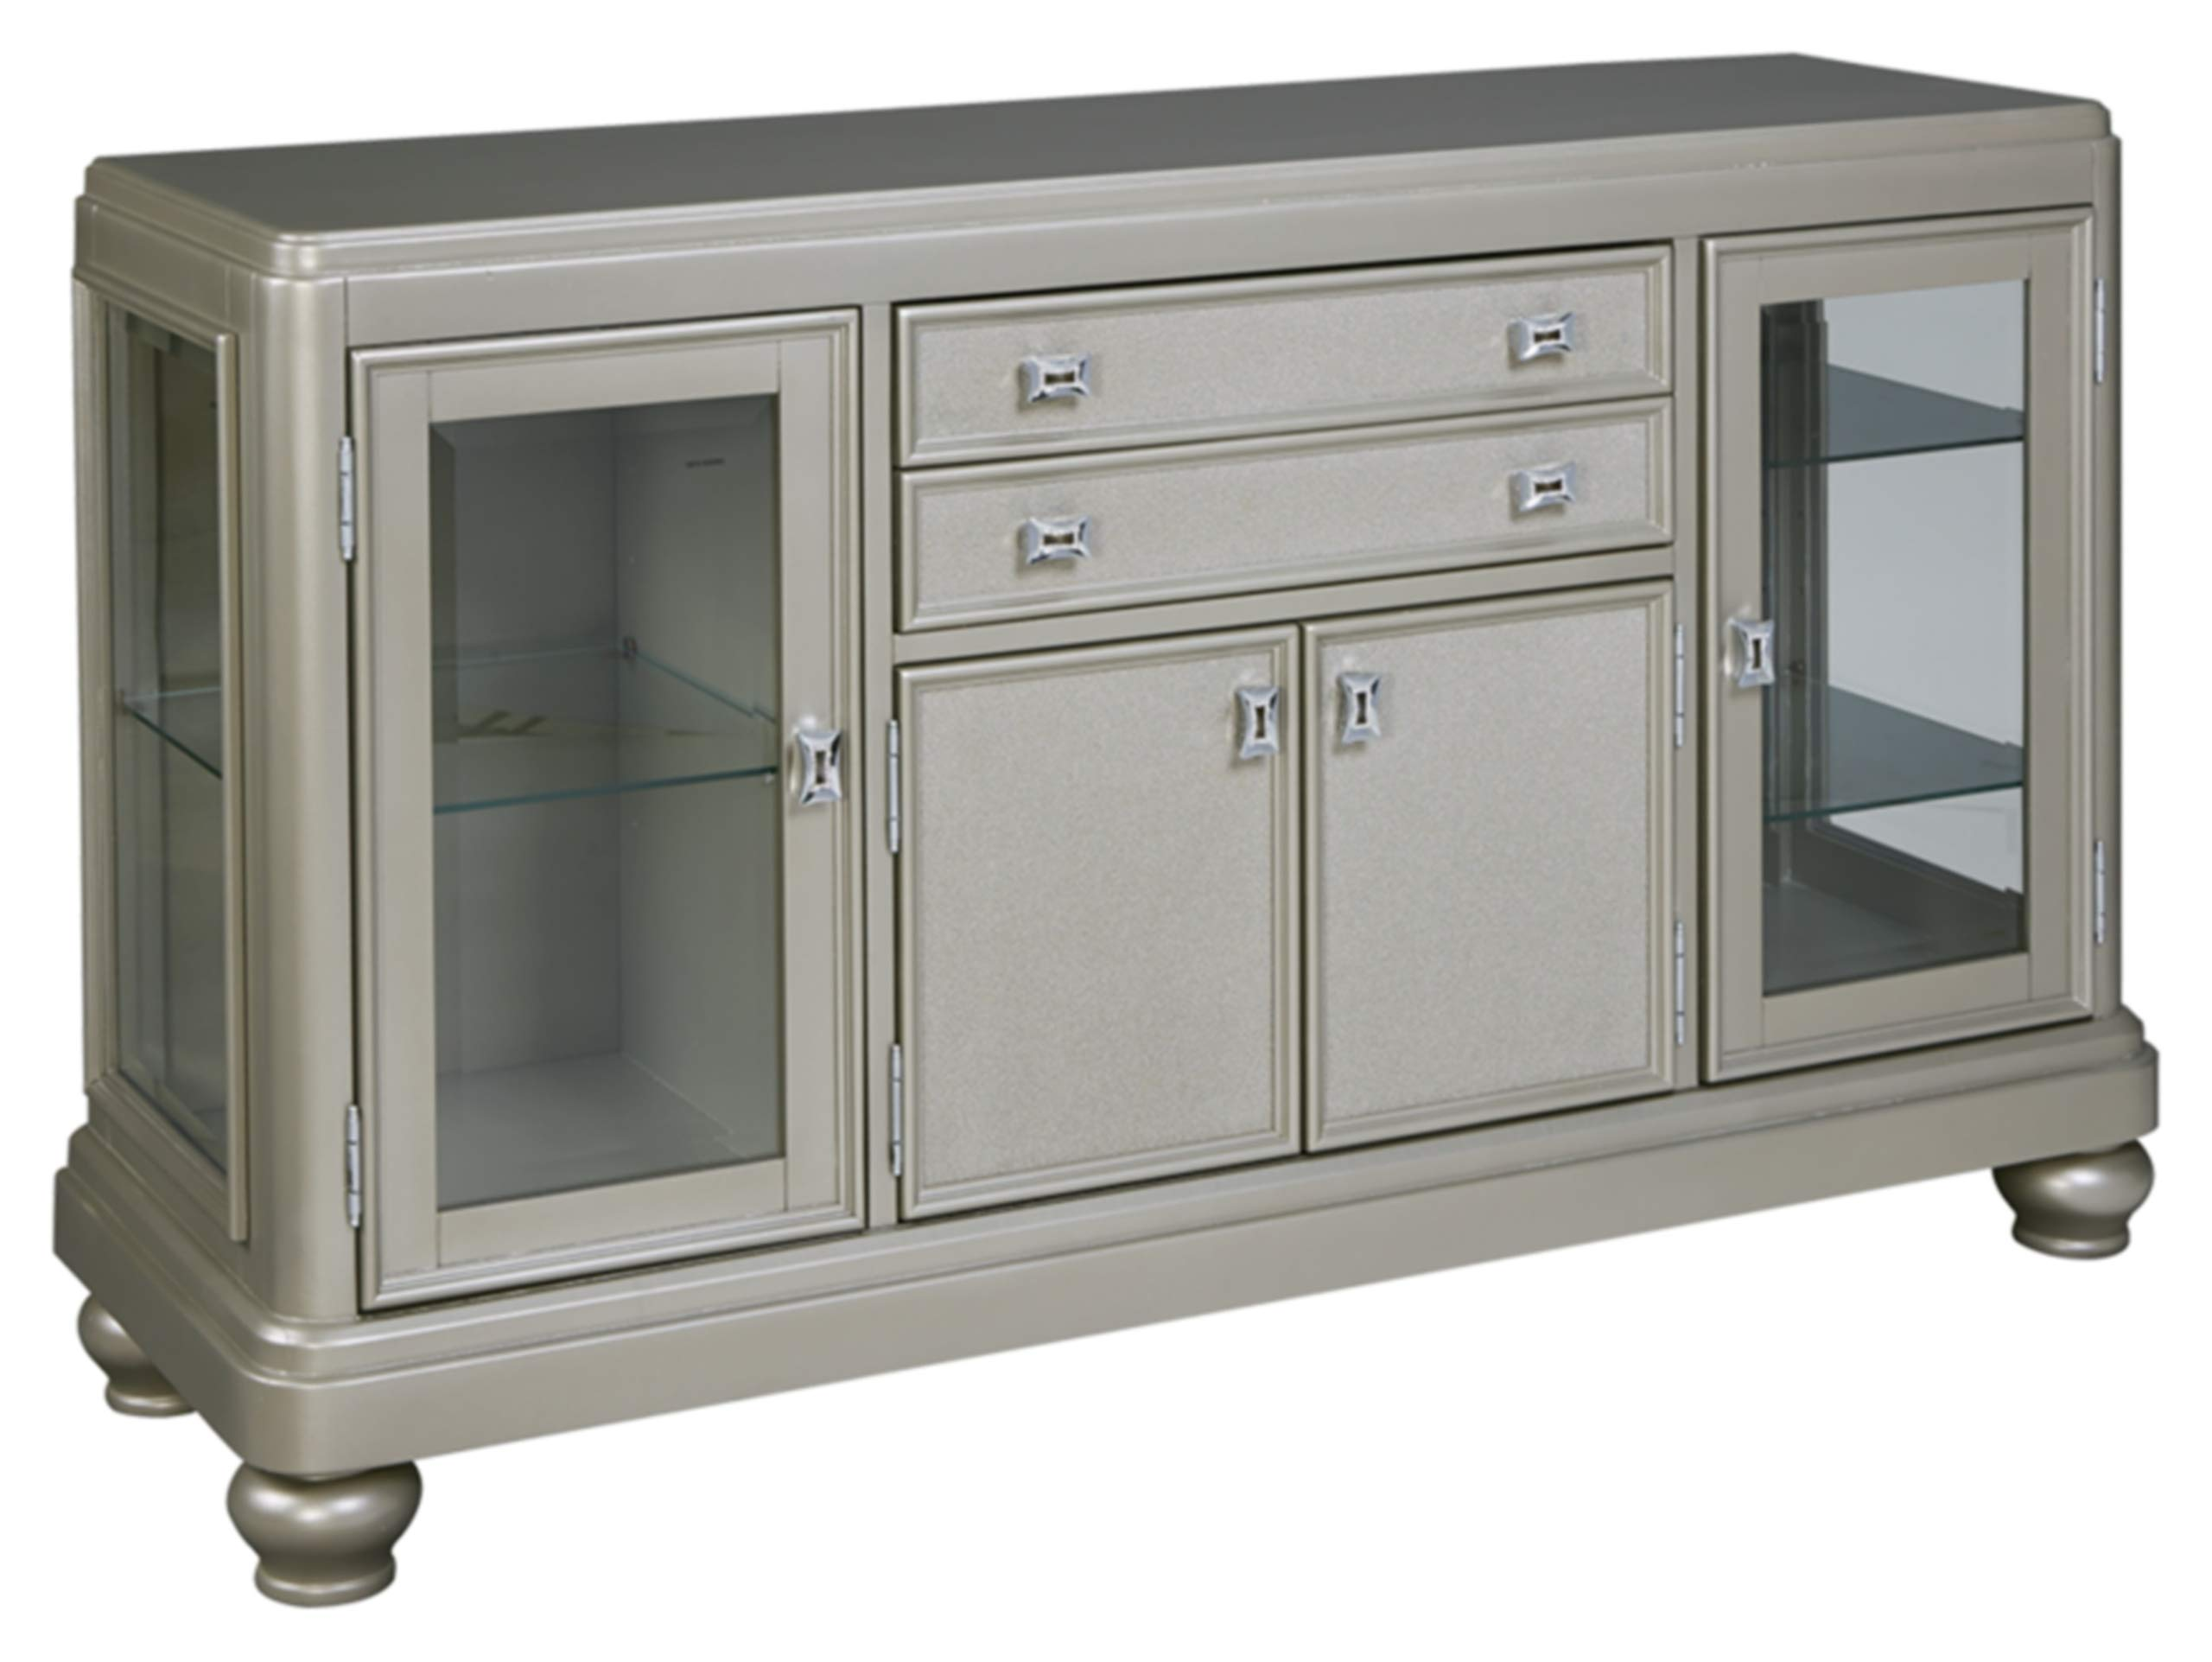 Ashley Furniture Signature Design - Coralayne Dining Room Server - Modern Style - Silver by Signature Design by Ashley